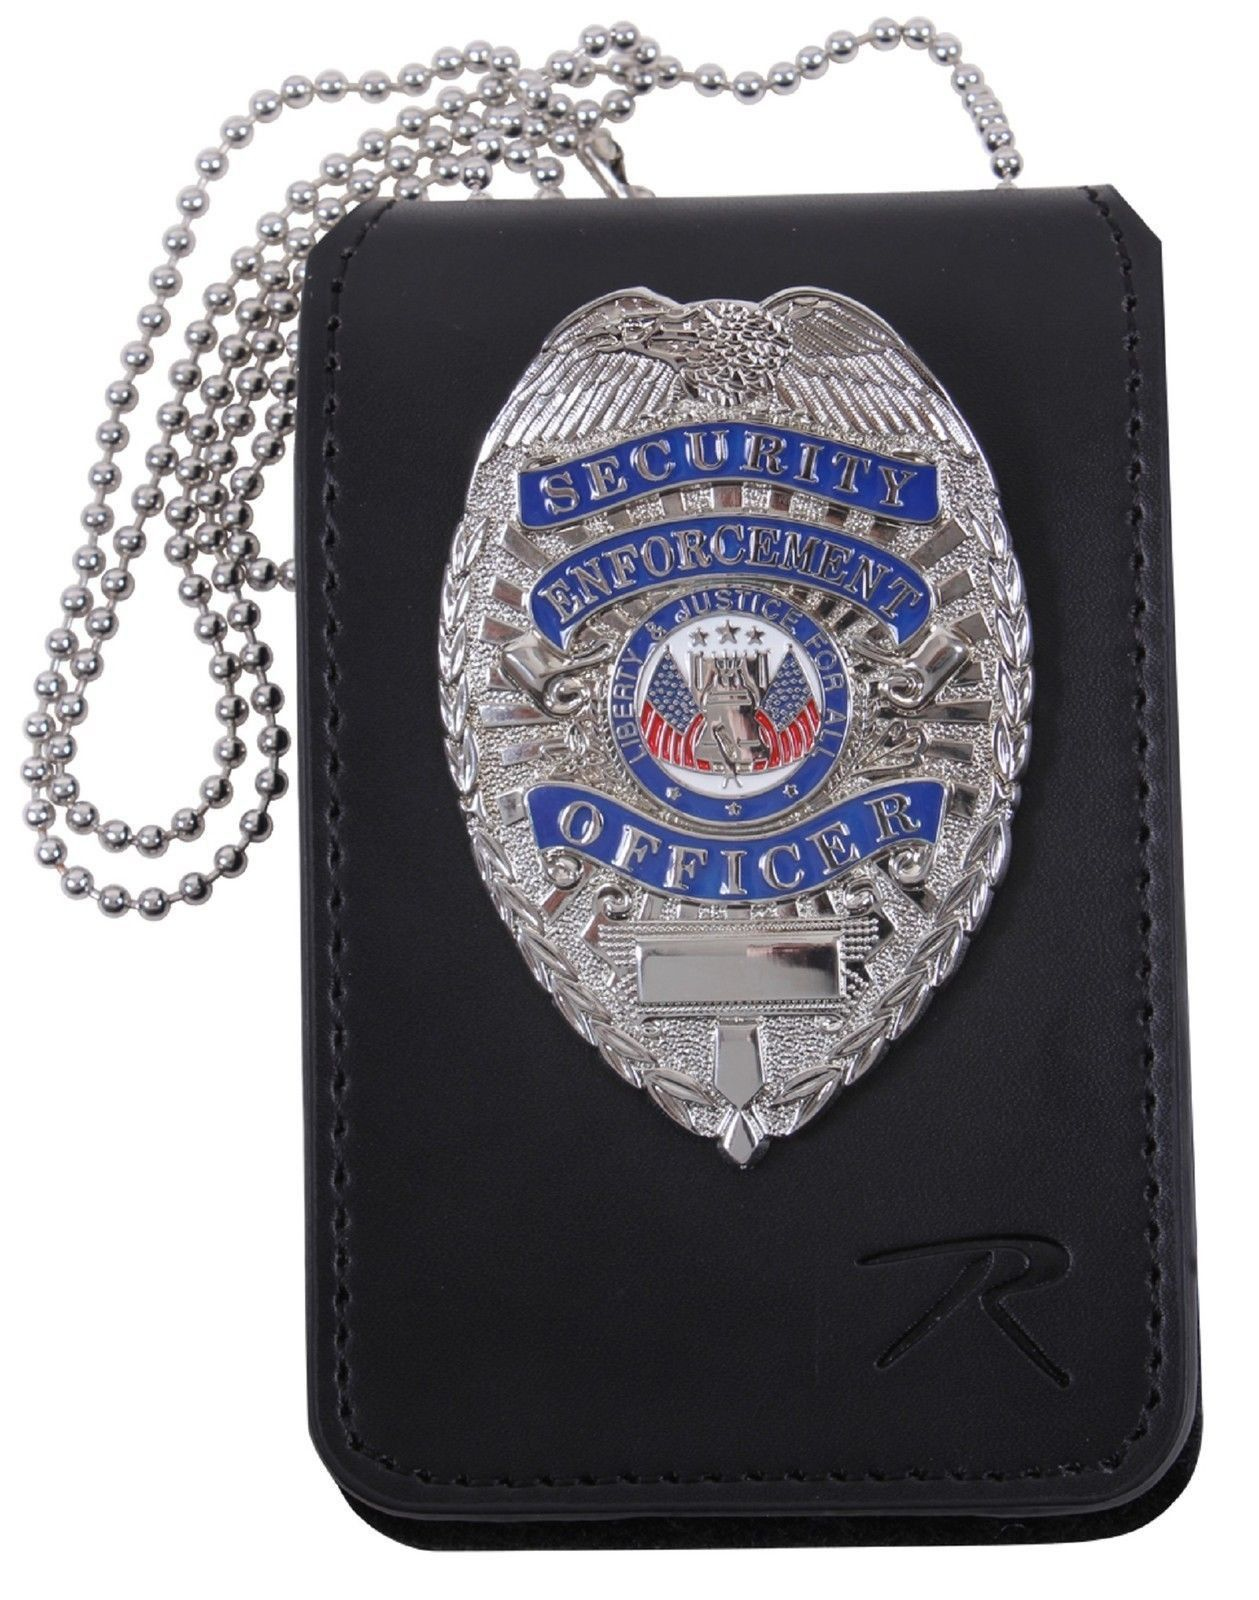 US MILITARY ID HOLDER BADGE HOLDER LEATHER ID BADGE CASE WITH NECK CHAIN